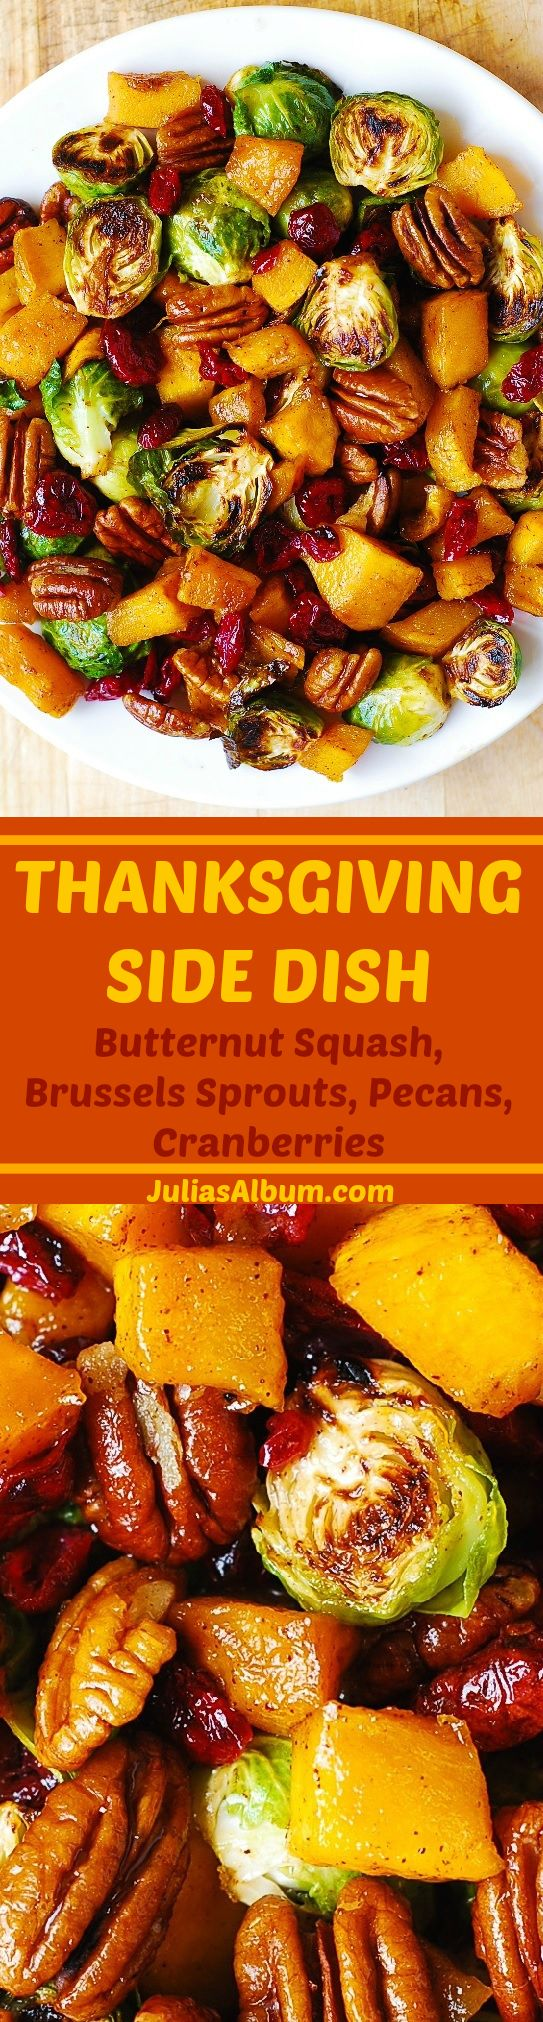 Thanksgiving Side Dish: Roasted Brussels Sprouts; Butternut Squash glazed with Cin